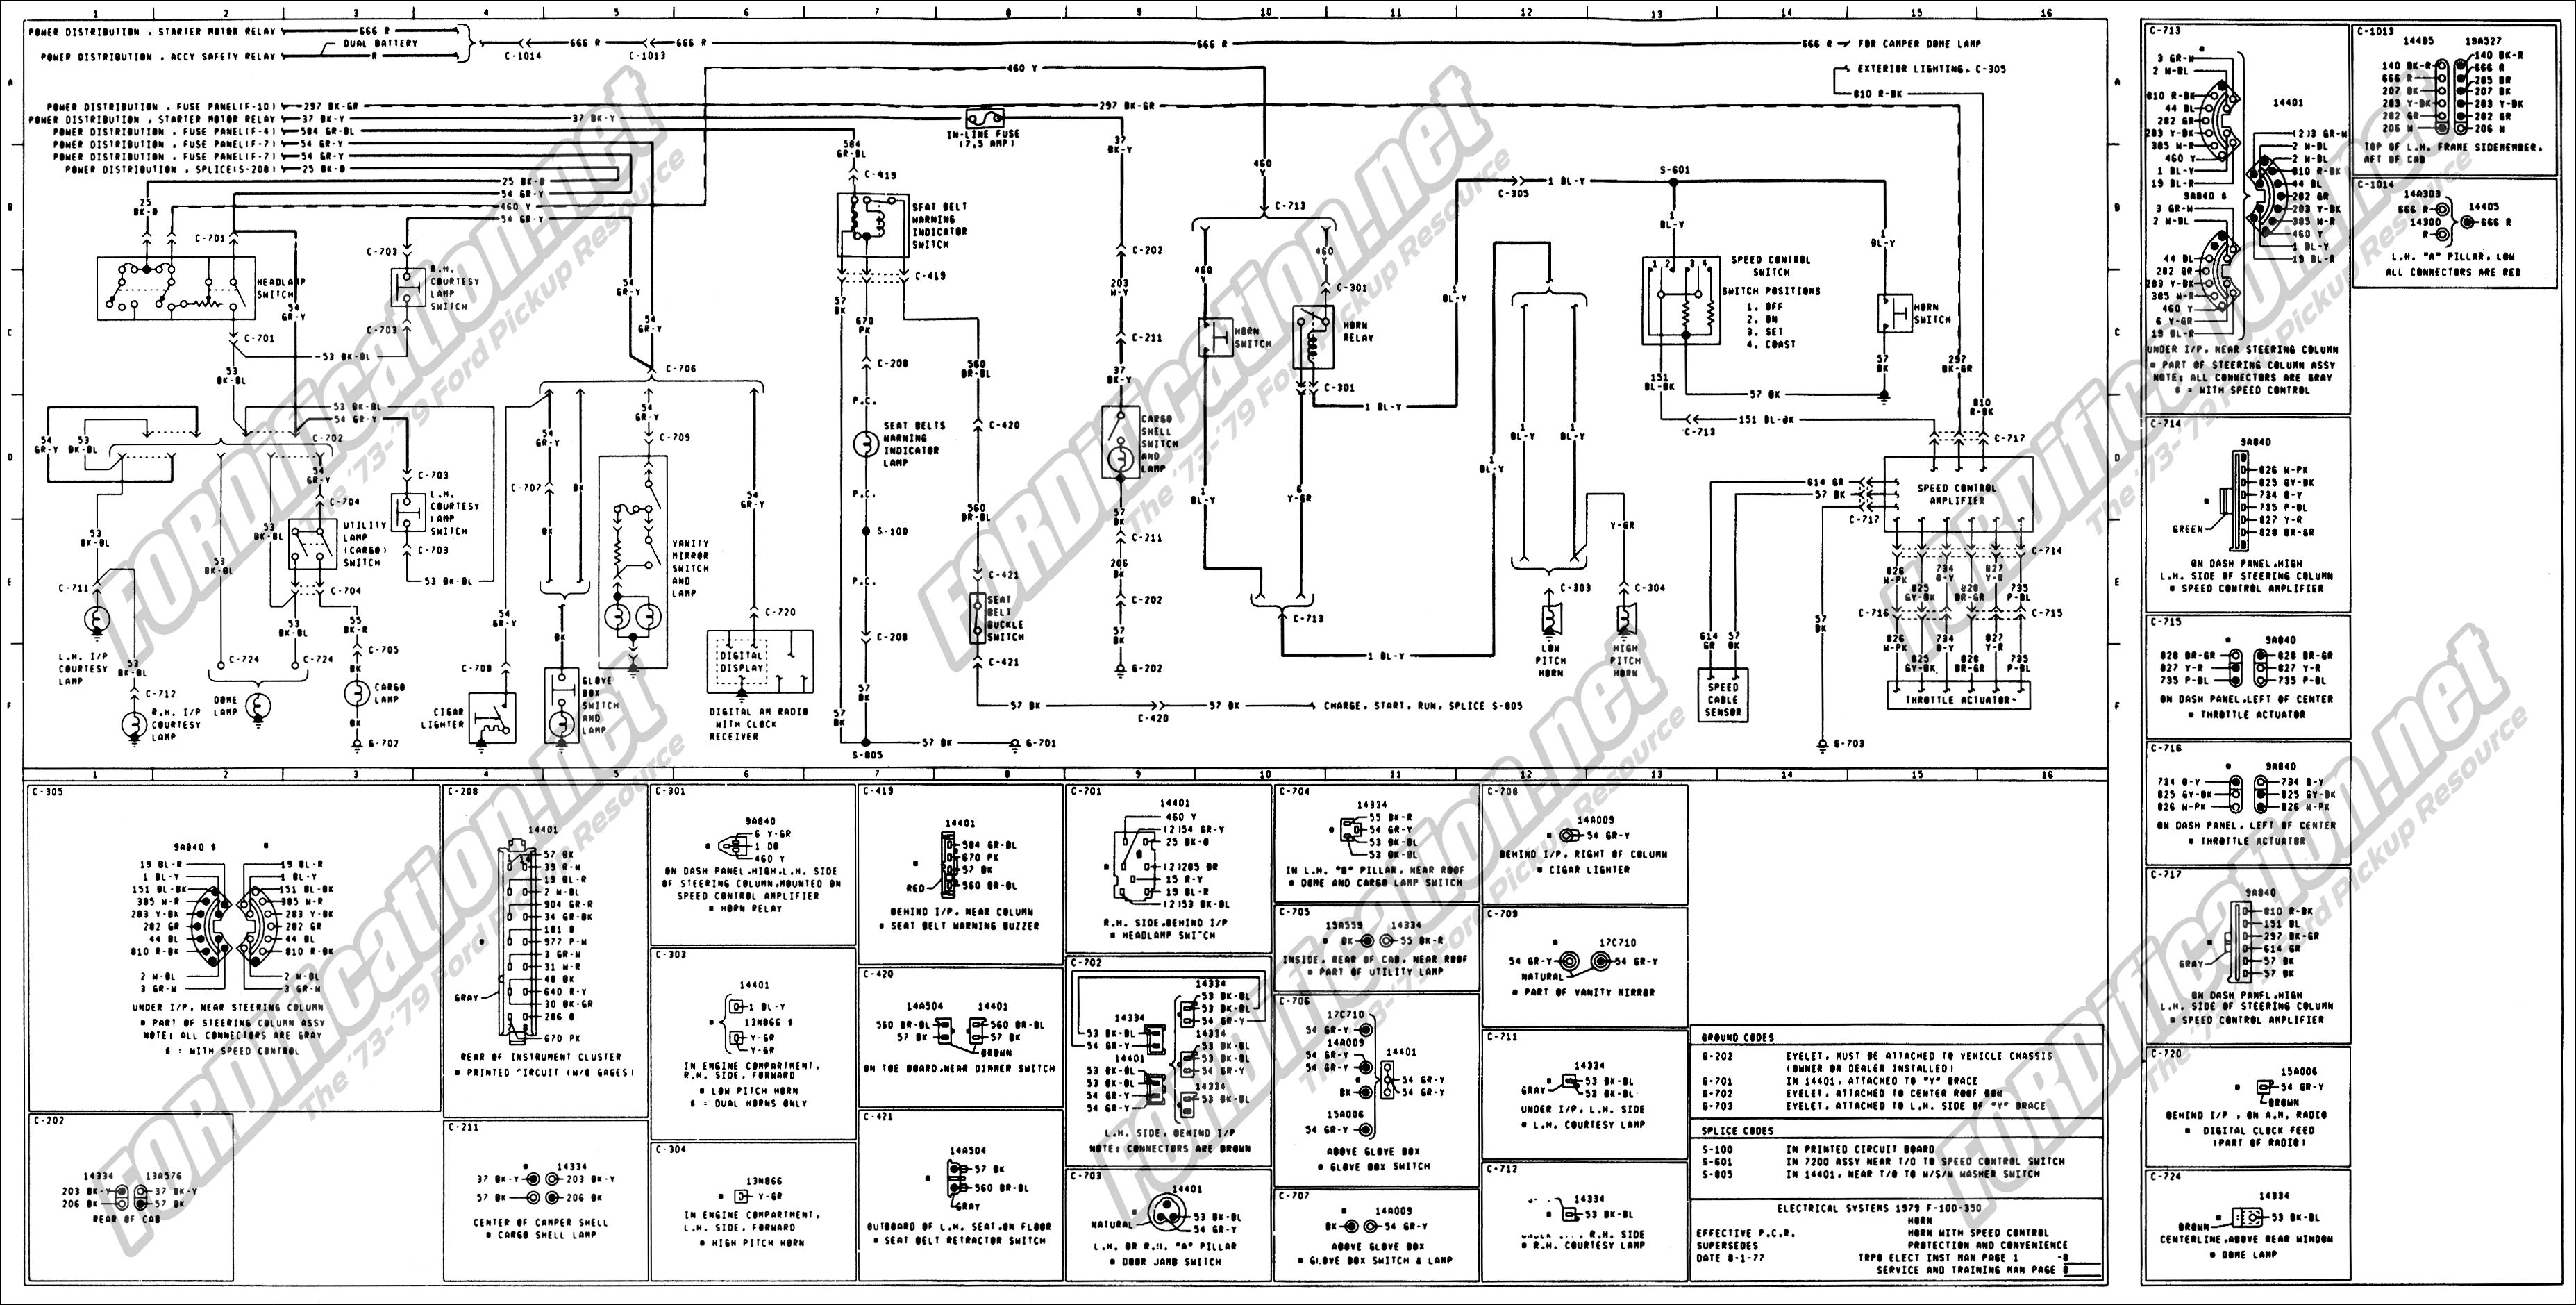 wiring_79master_8of9 1973 1979 ford truck wiring diagrams & schematics fordification net 1978 bronco fuse box diagram at readyjetset.co